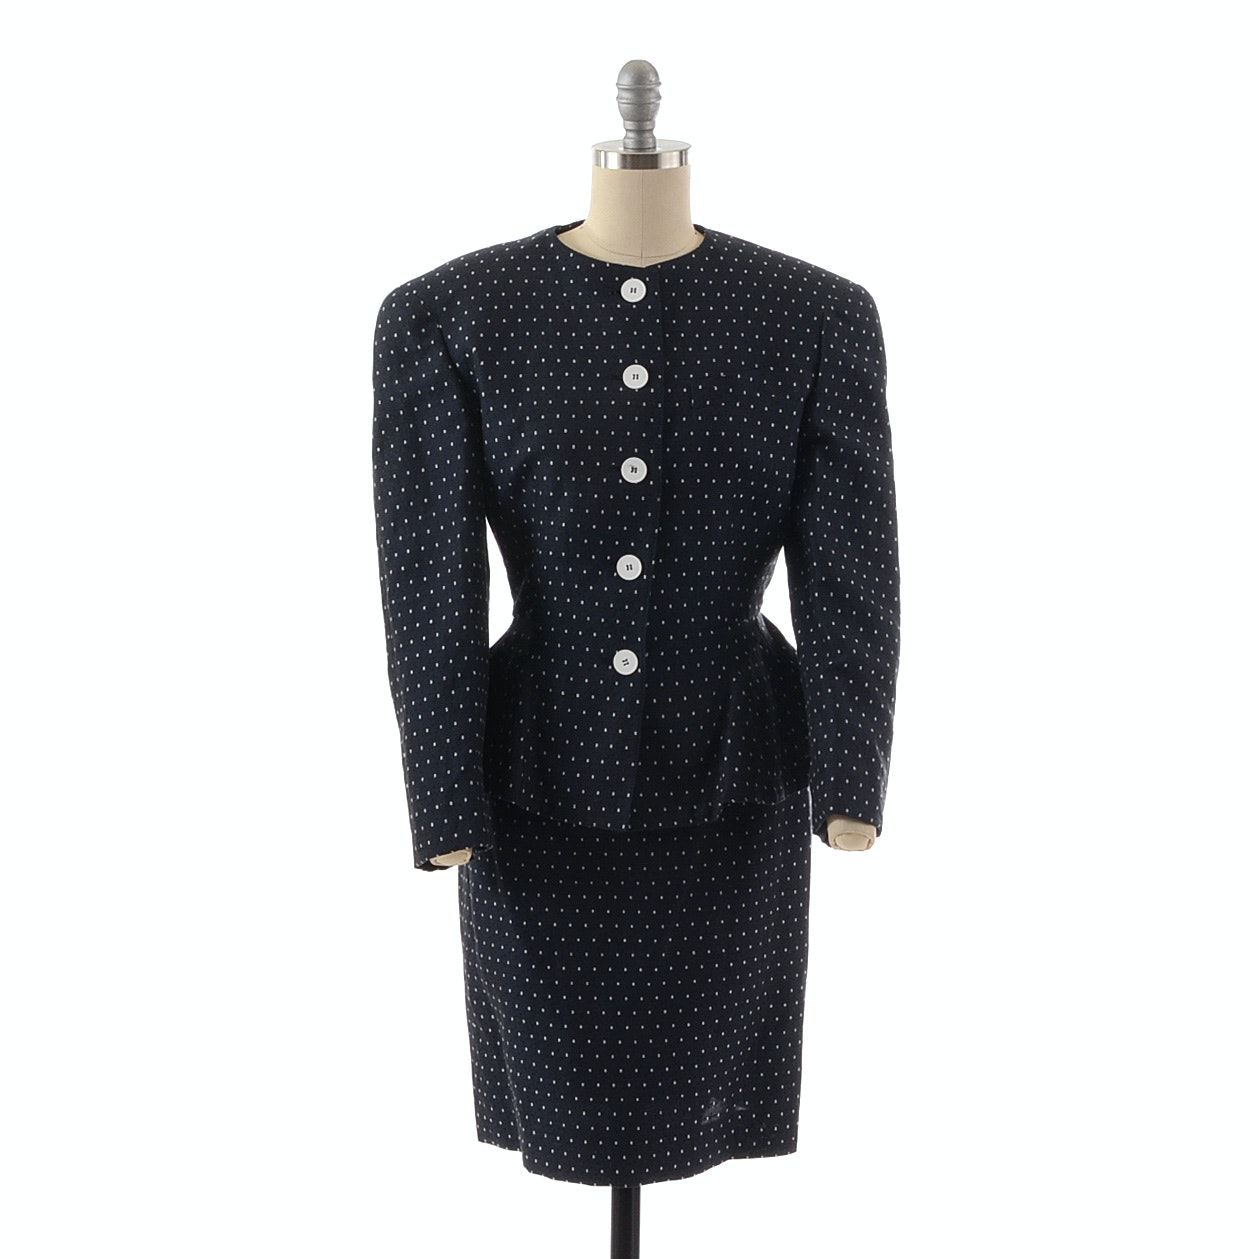 1980s Louis Feraud Navy Blue and White Suit with Peplum Blazer and Pencil Skirt